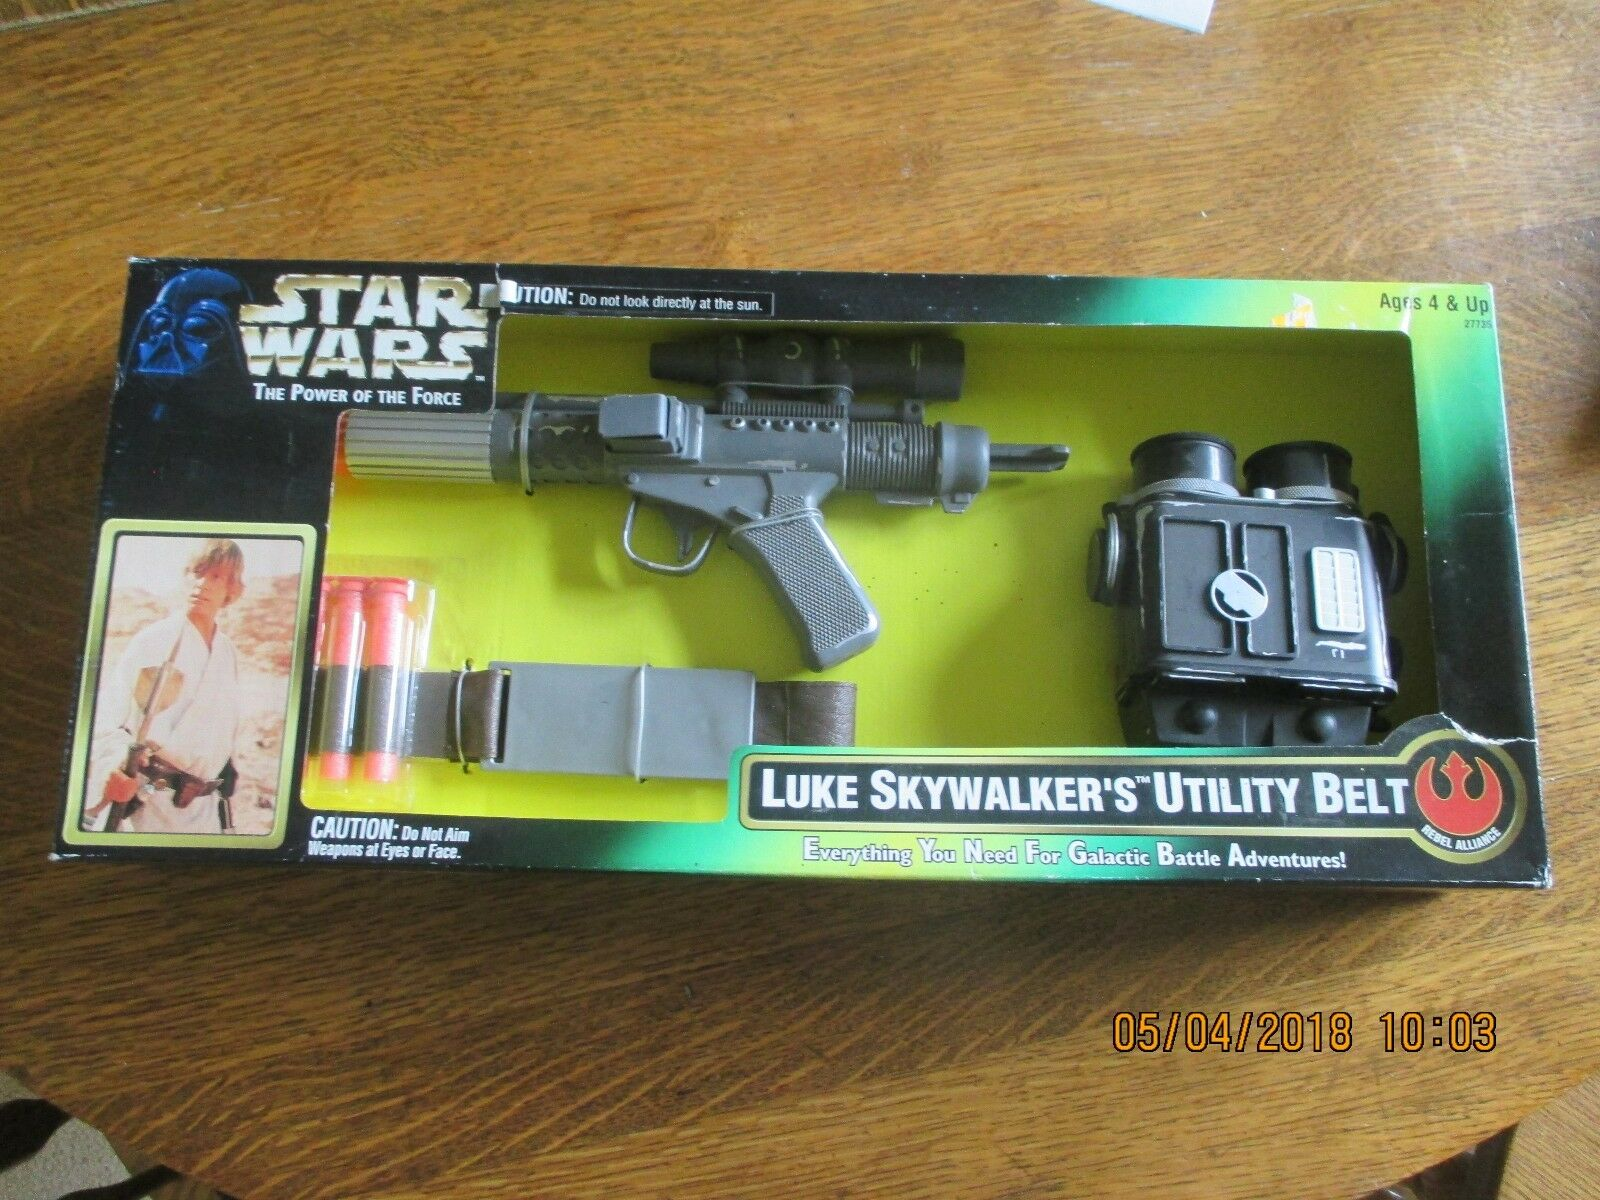 1996 Star Wars POTF Luke Skywalker's Utility Belt Blaster Binoculars by Kenner